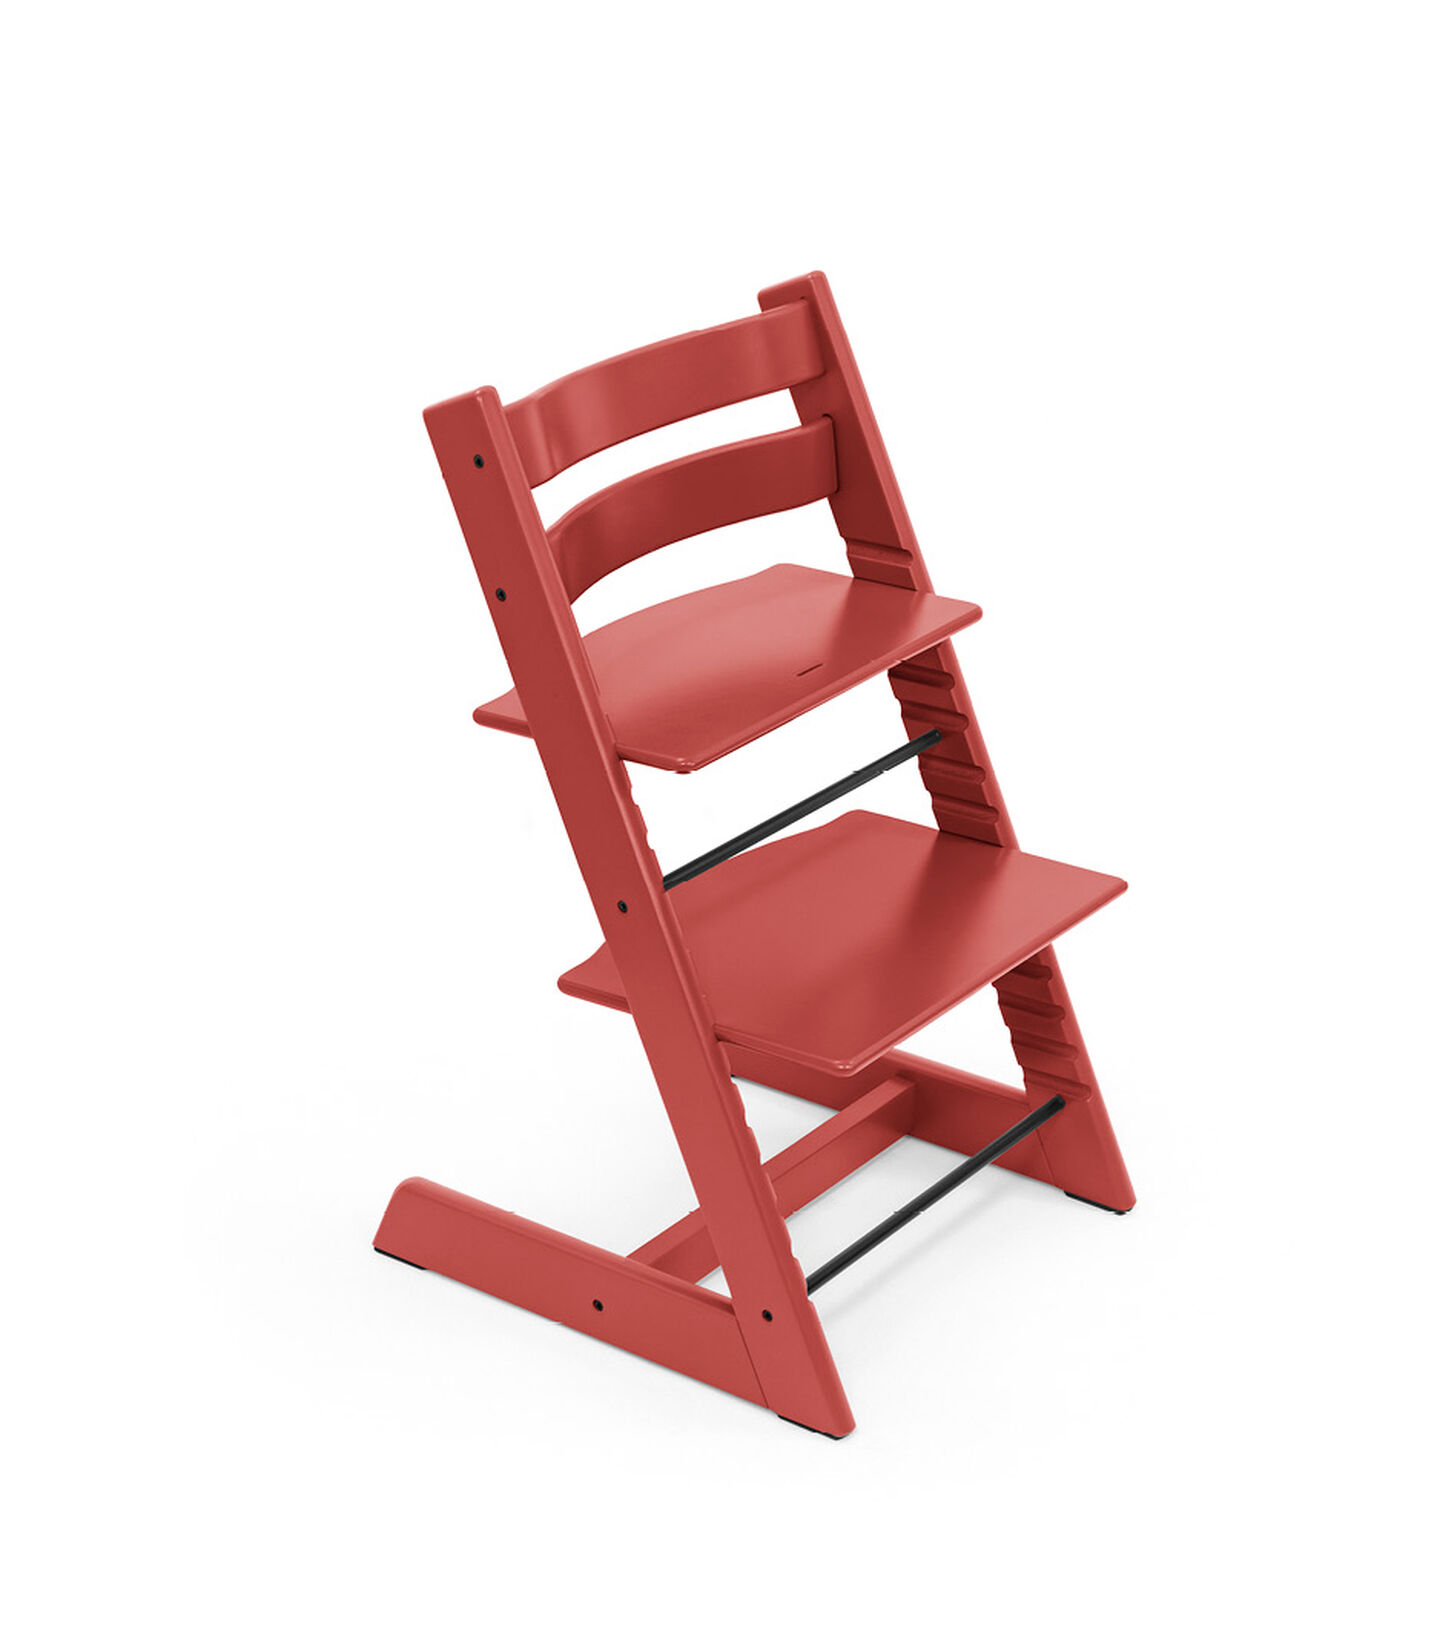 Tripp Trapp® Chair Warm Red, Warm Red, mainview view 2